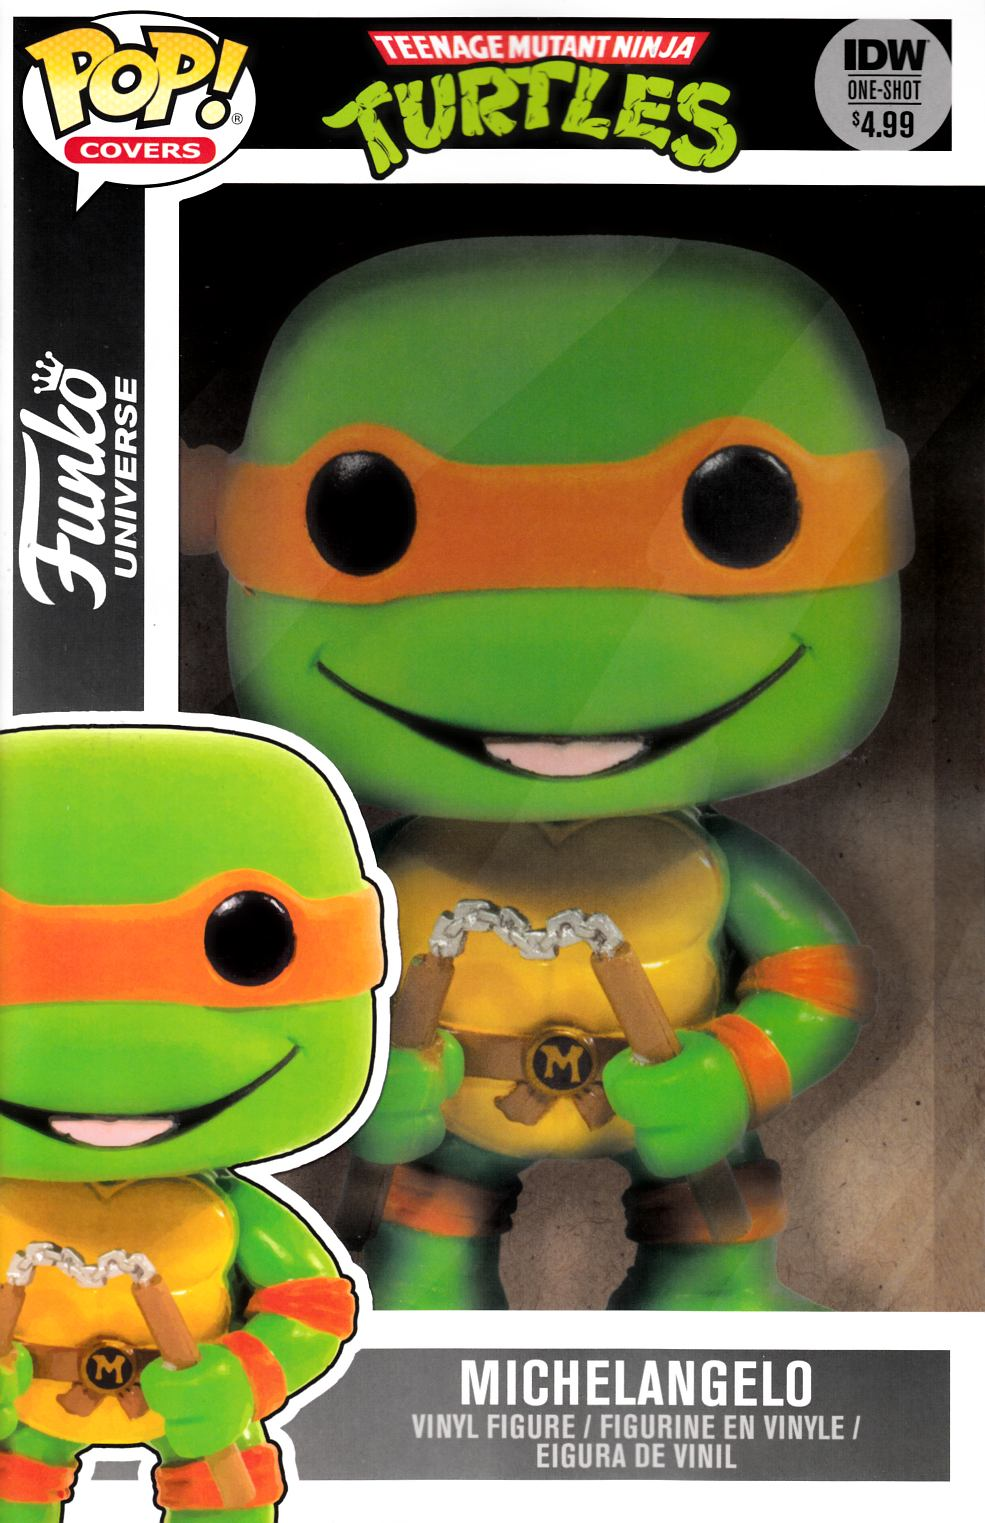 Teenage Mutant Ninja Turtles Funko Universe Funko (One Shot) Toy Cover [IDW Comic]